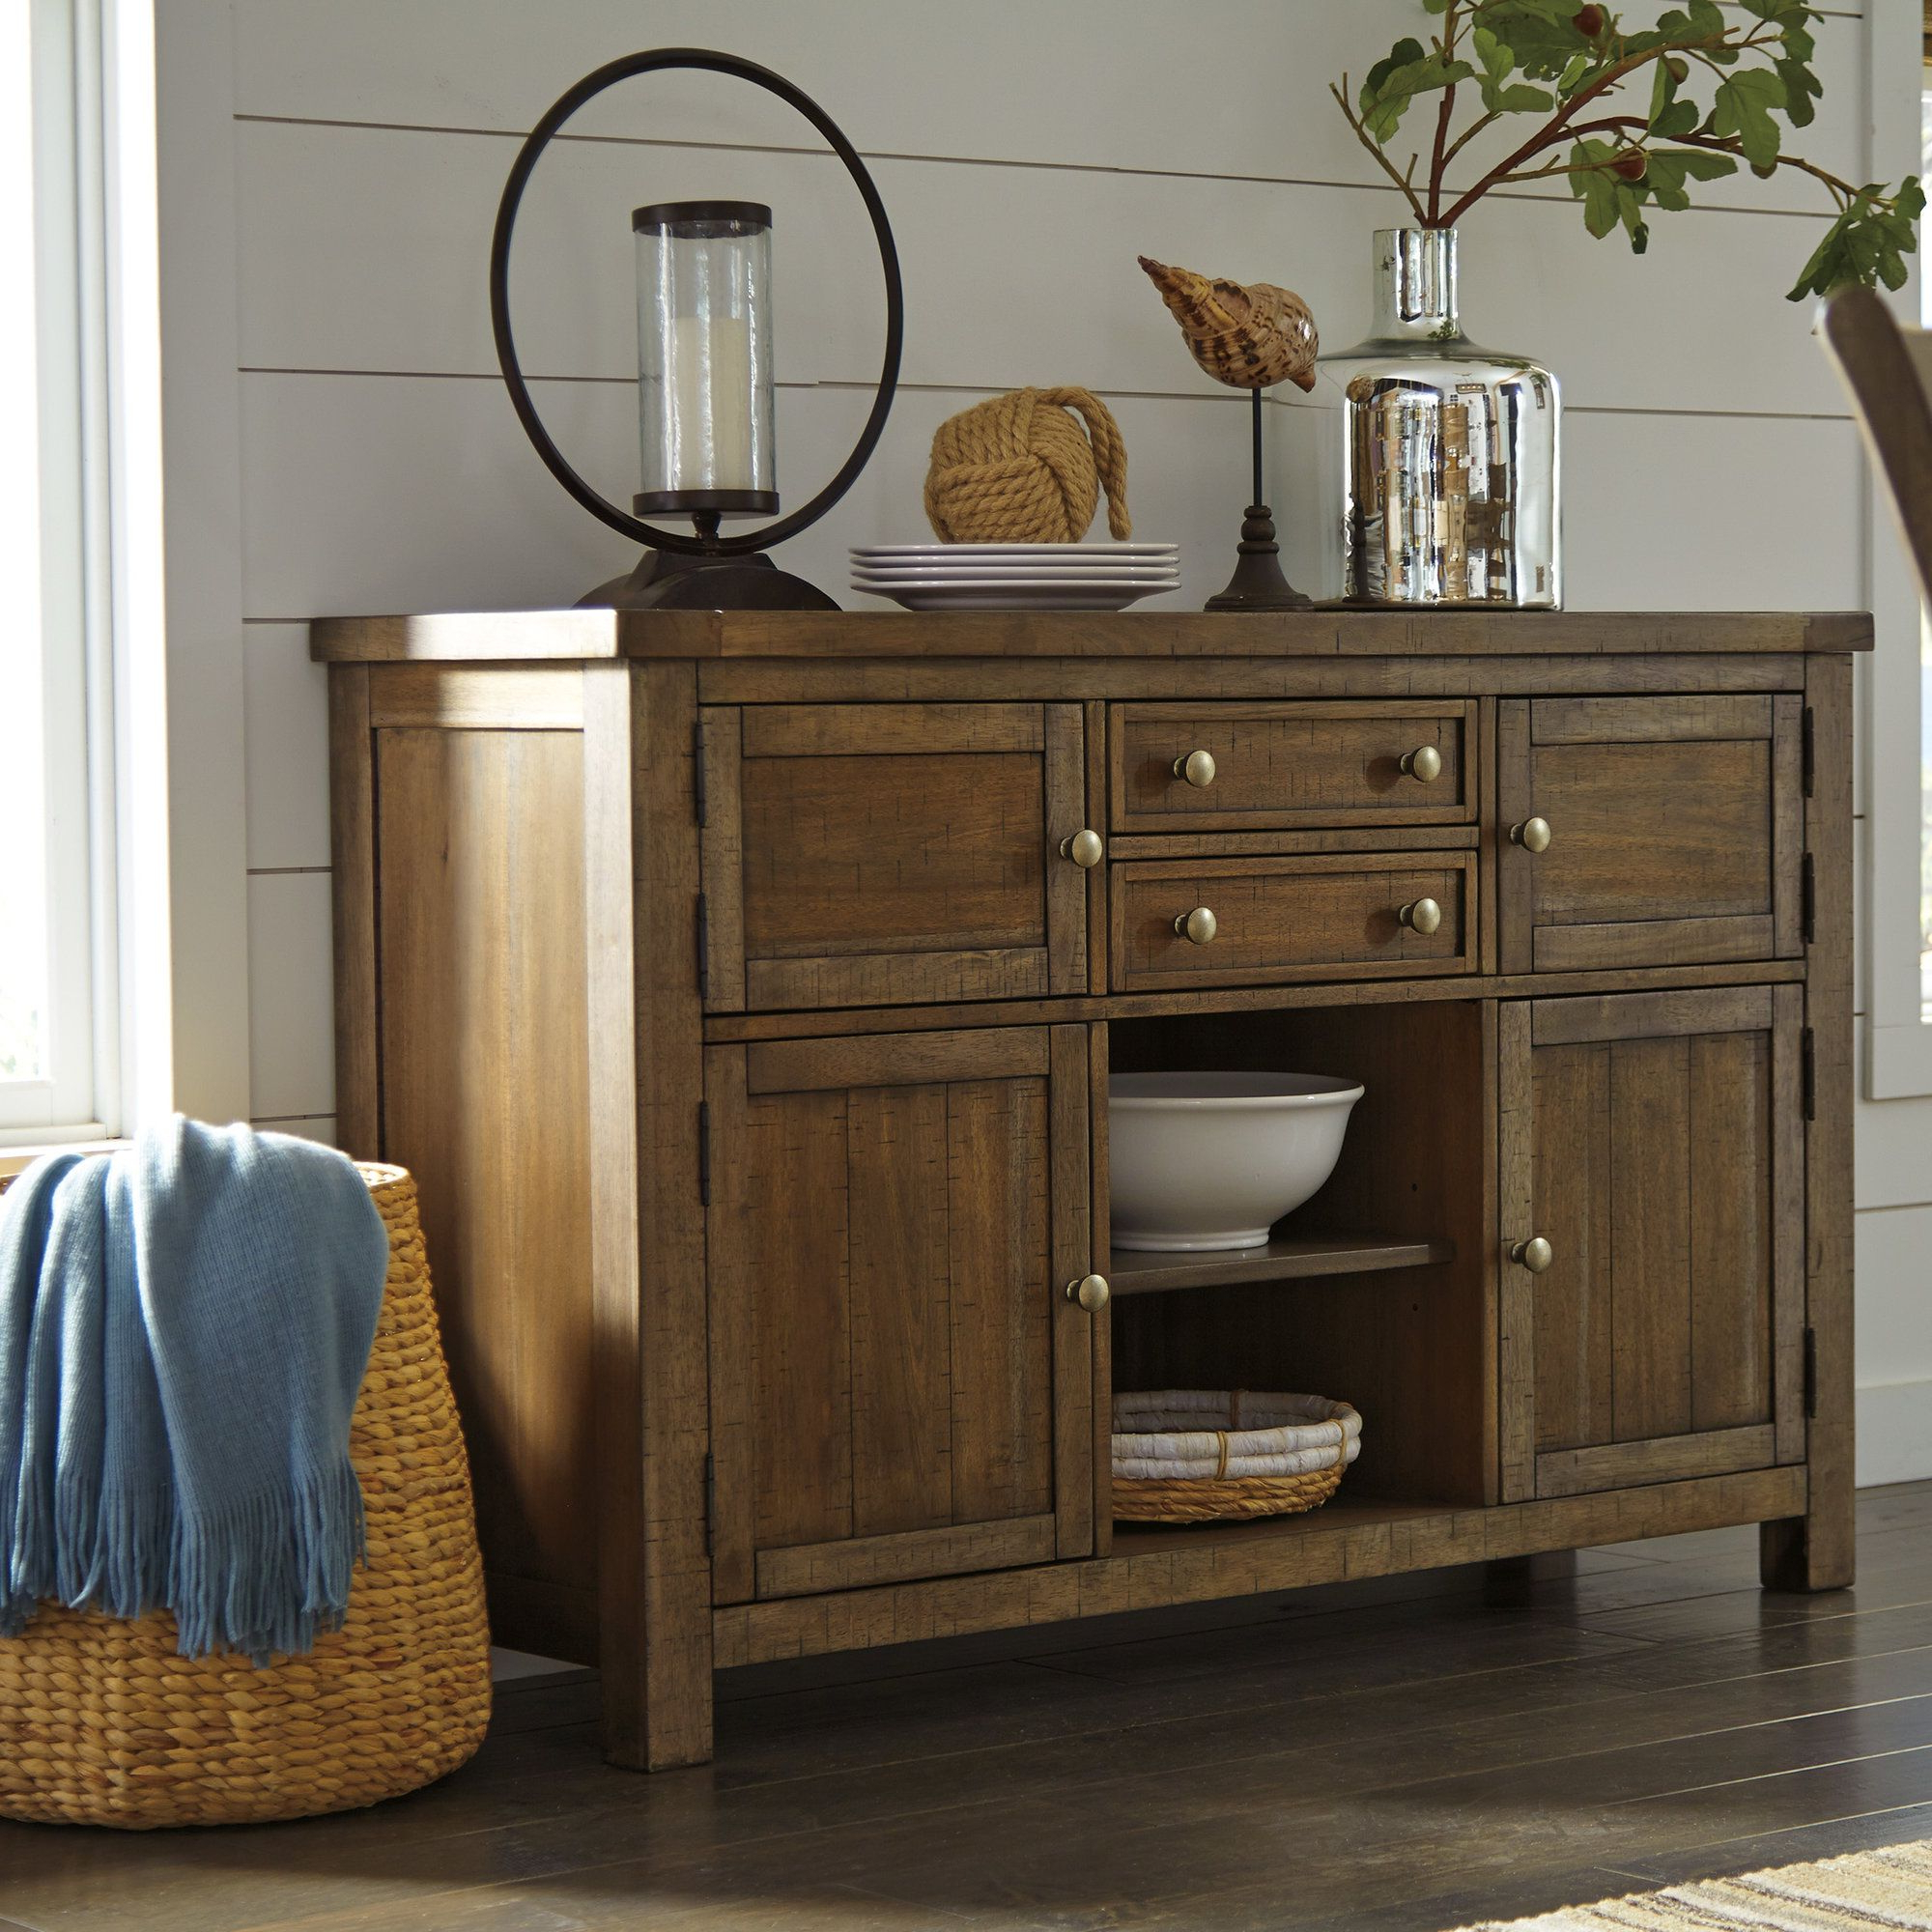 Hillary Dining Room Buffet Table | Dining Room Furniture Within Nashoba Sideboards (View 7 of 20)